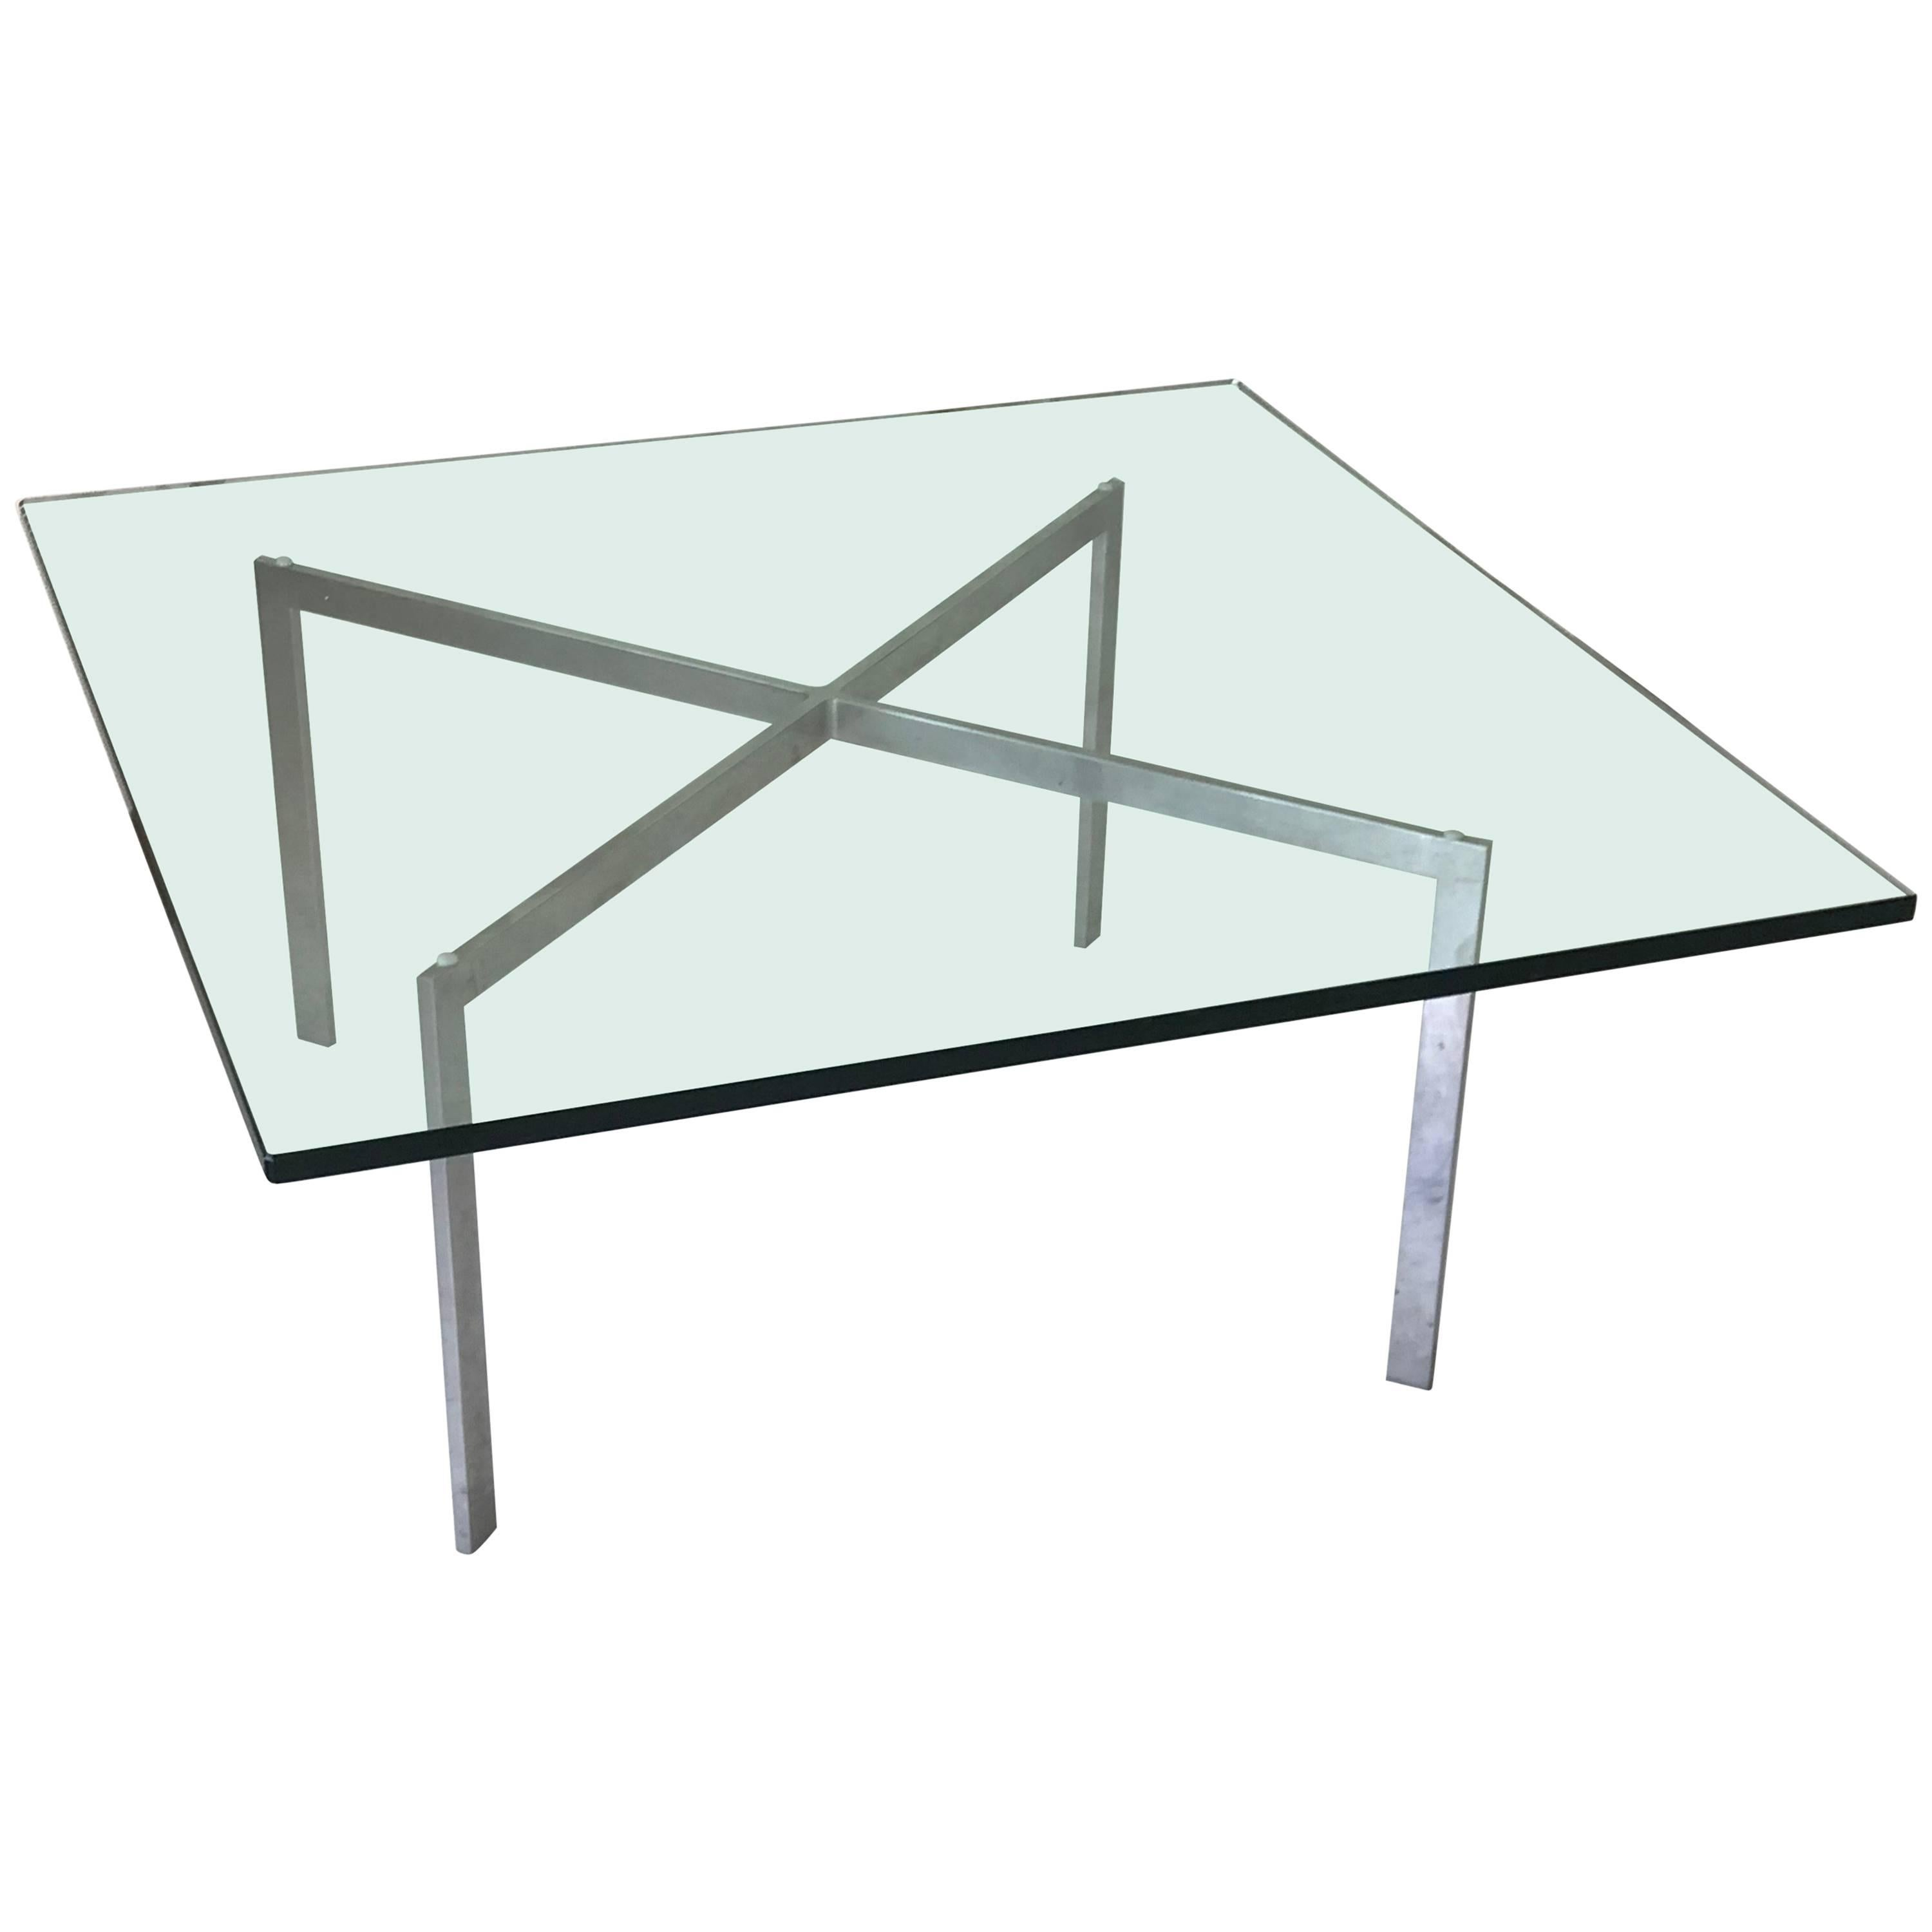 1970s Knoll Mies Van Der Rohe Barcelona Coffee Table With Glass Top 1